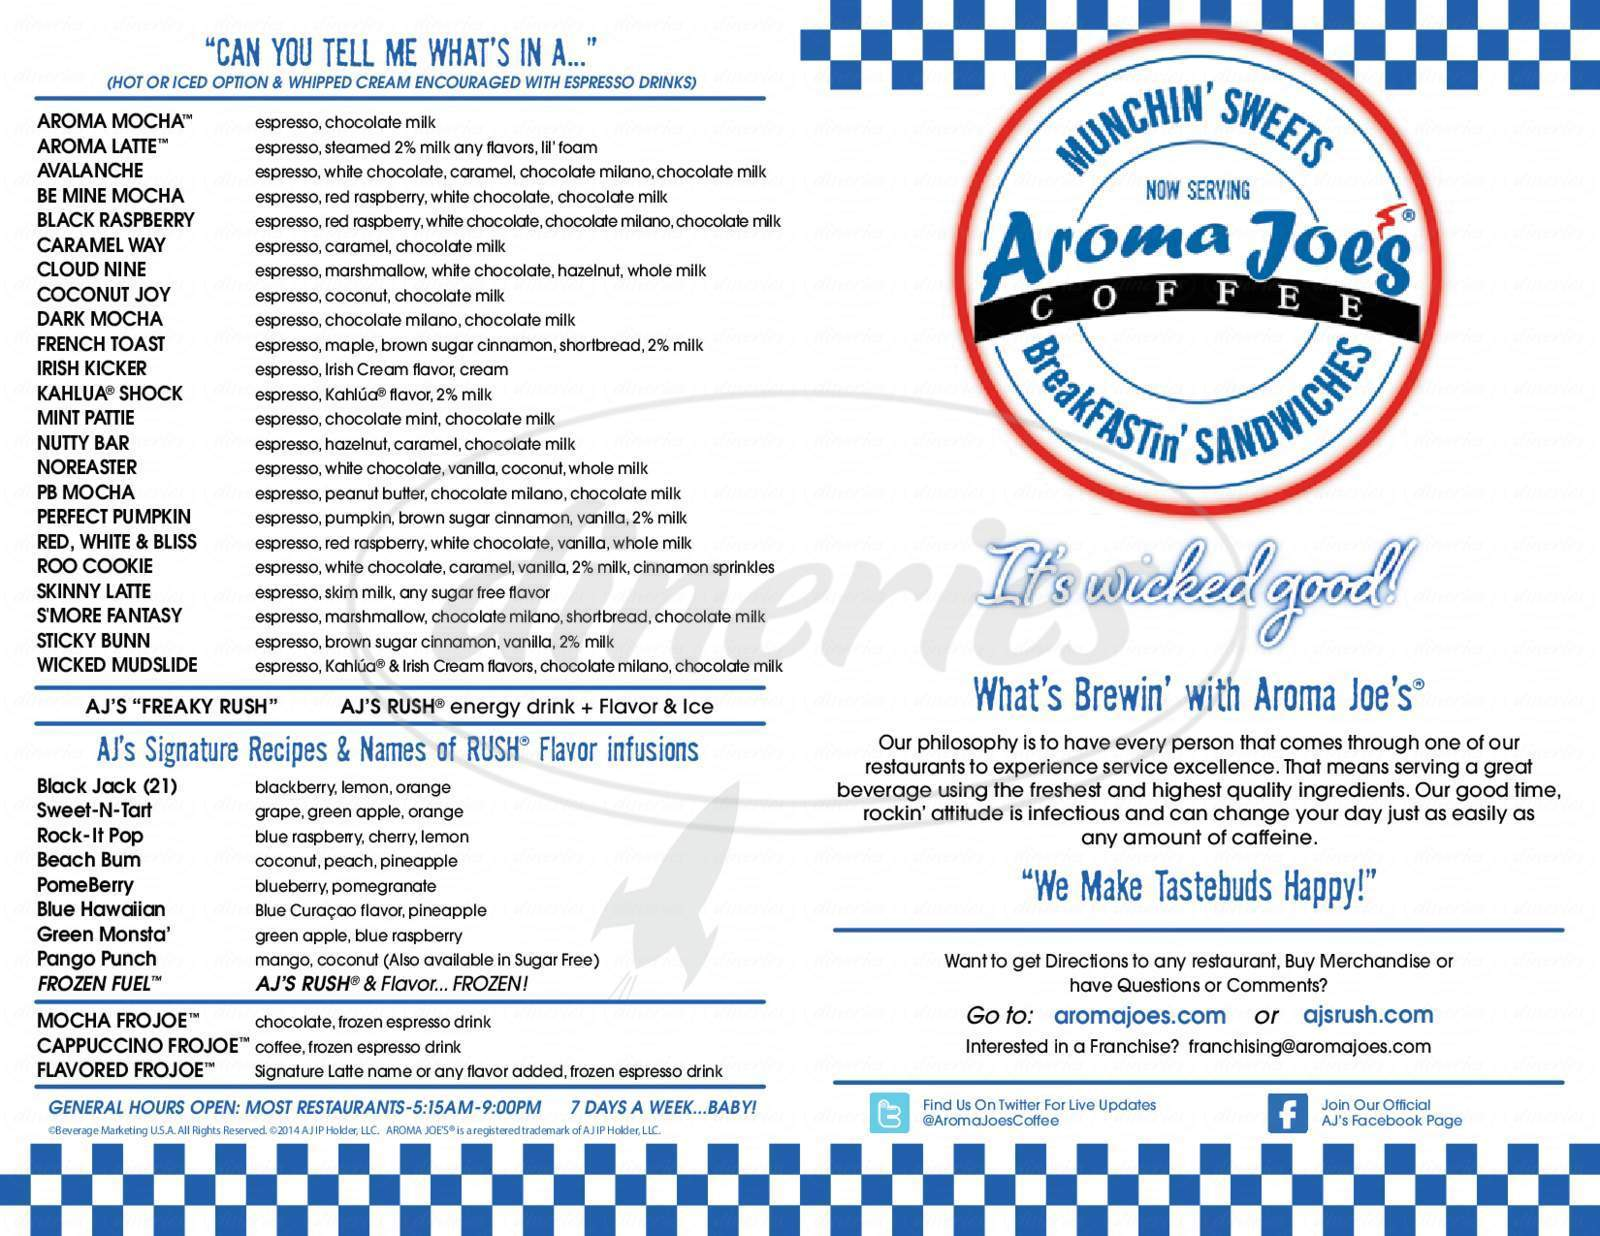 menu for Aroma Joe's